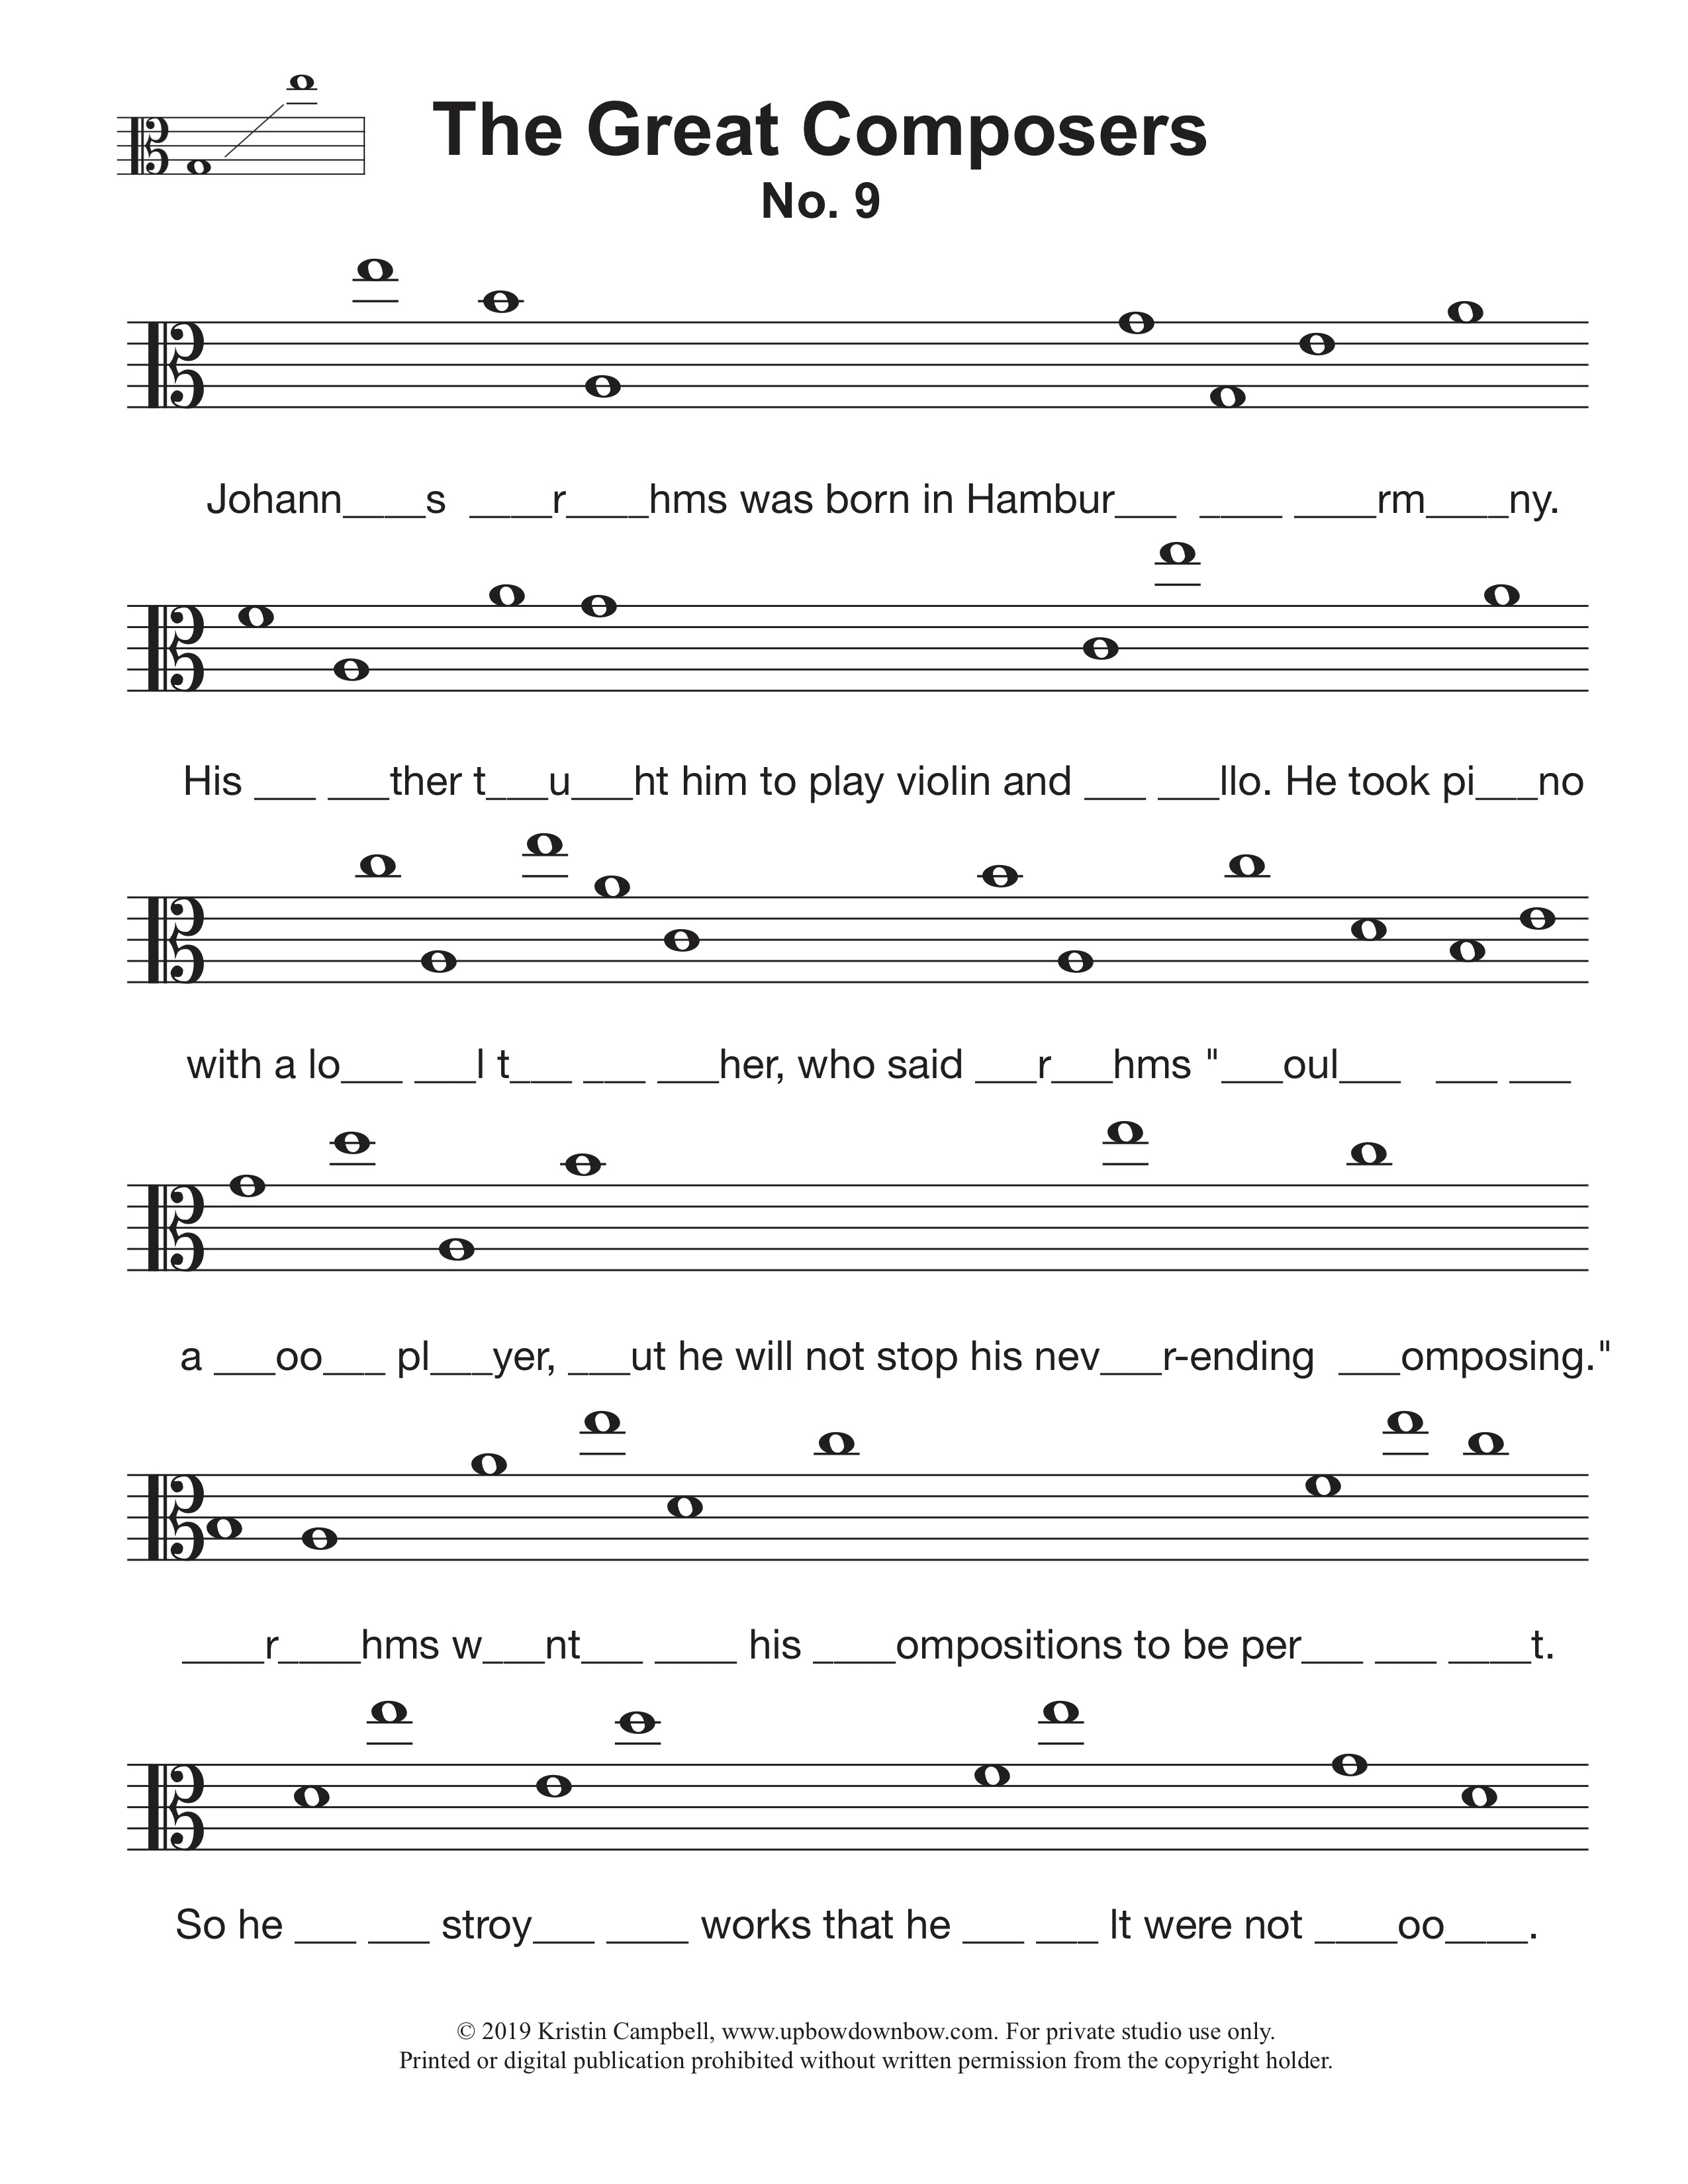 The Great Composers Note Reading Worksheet